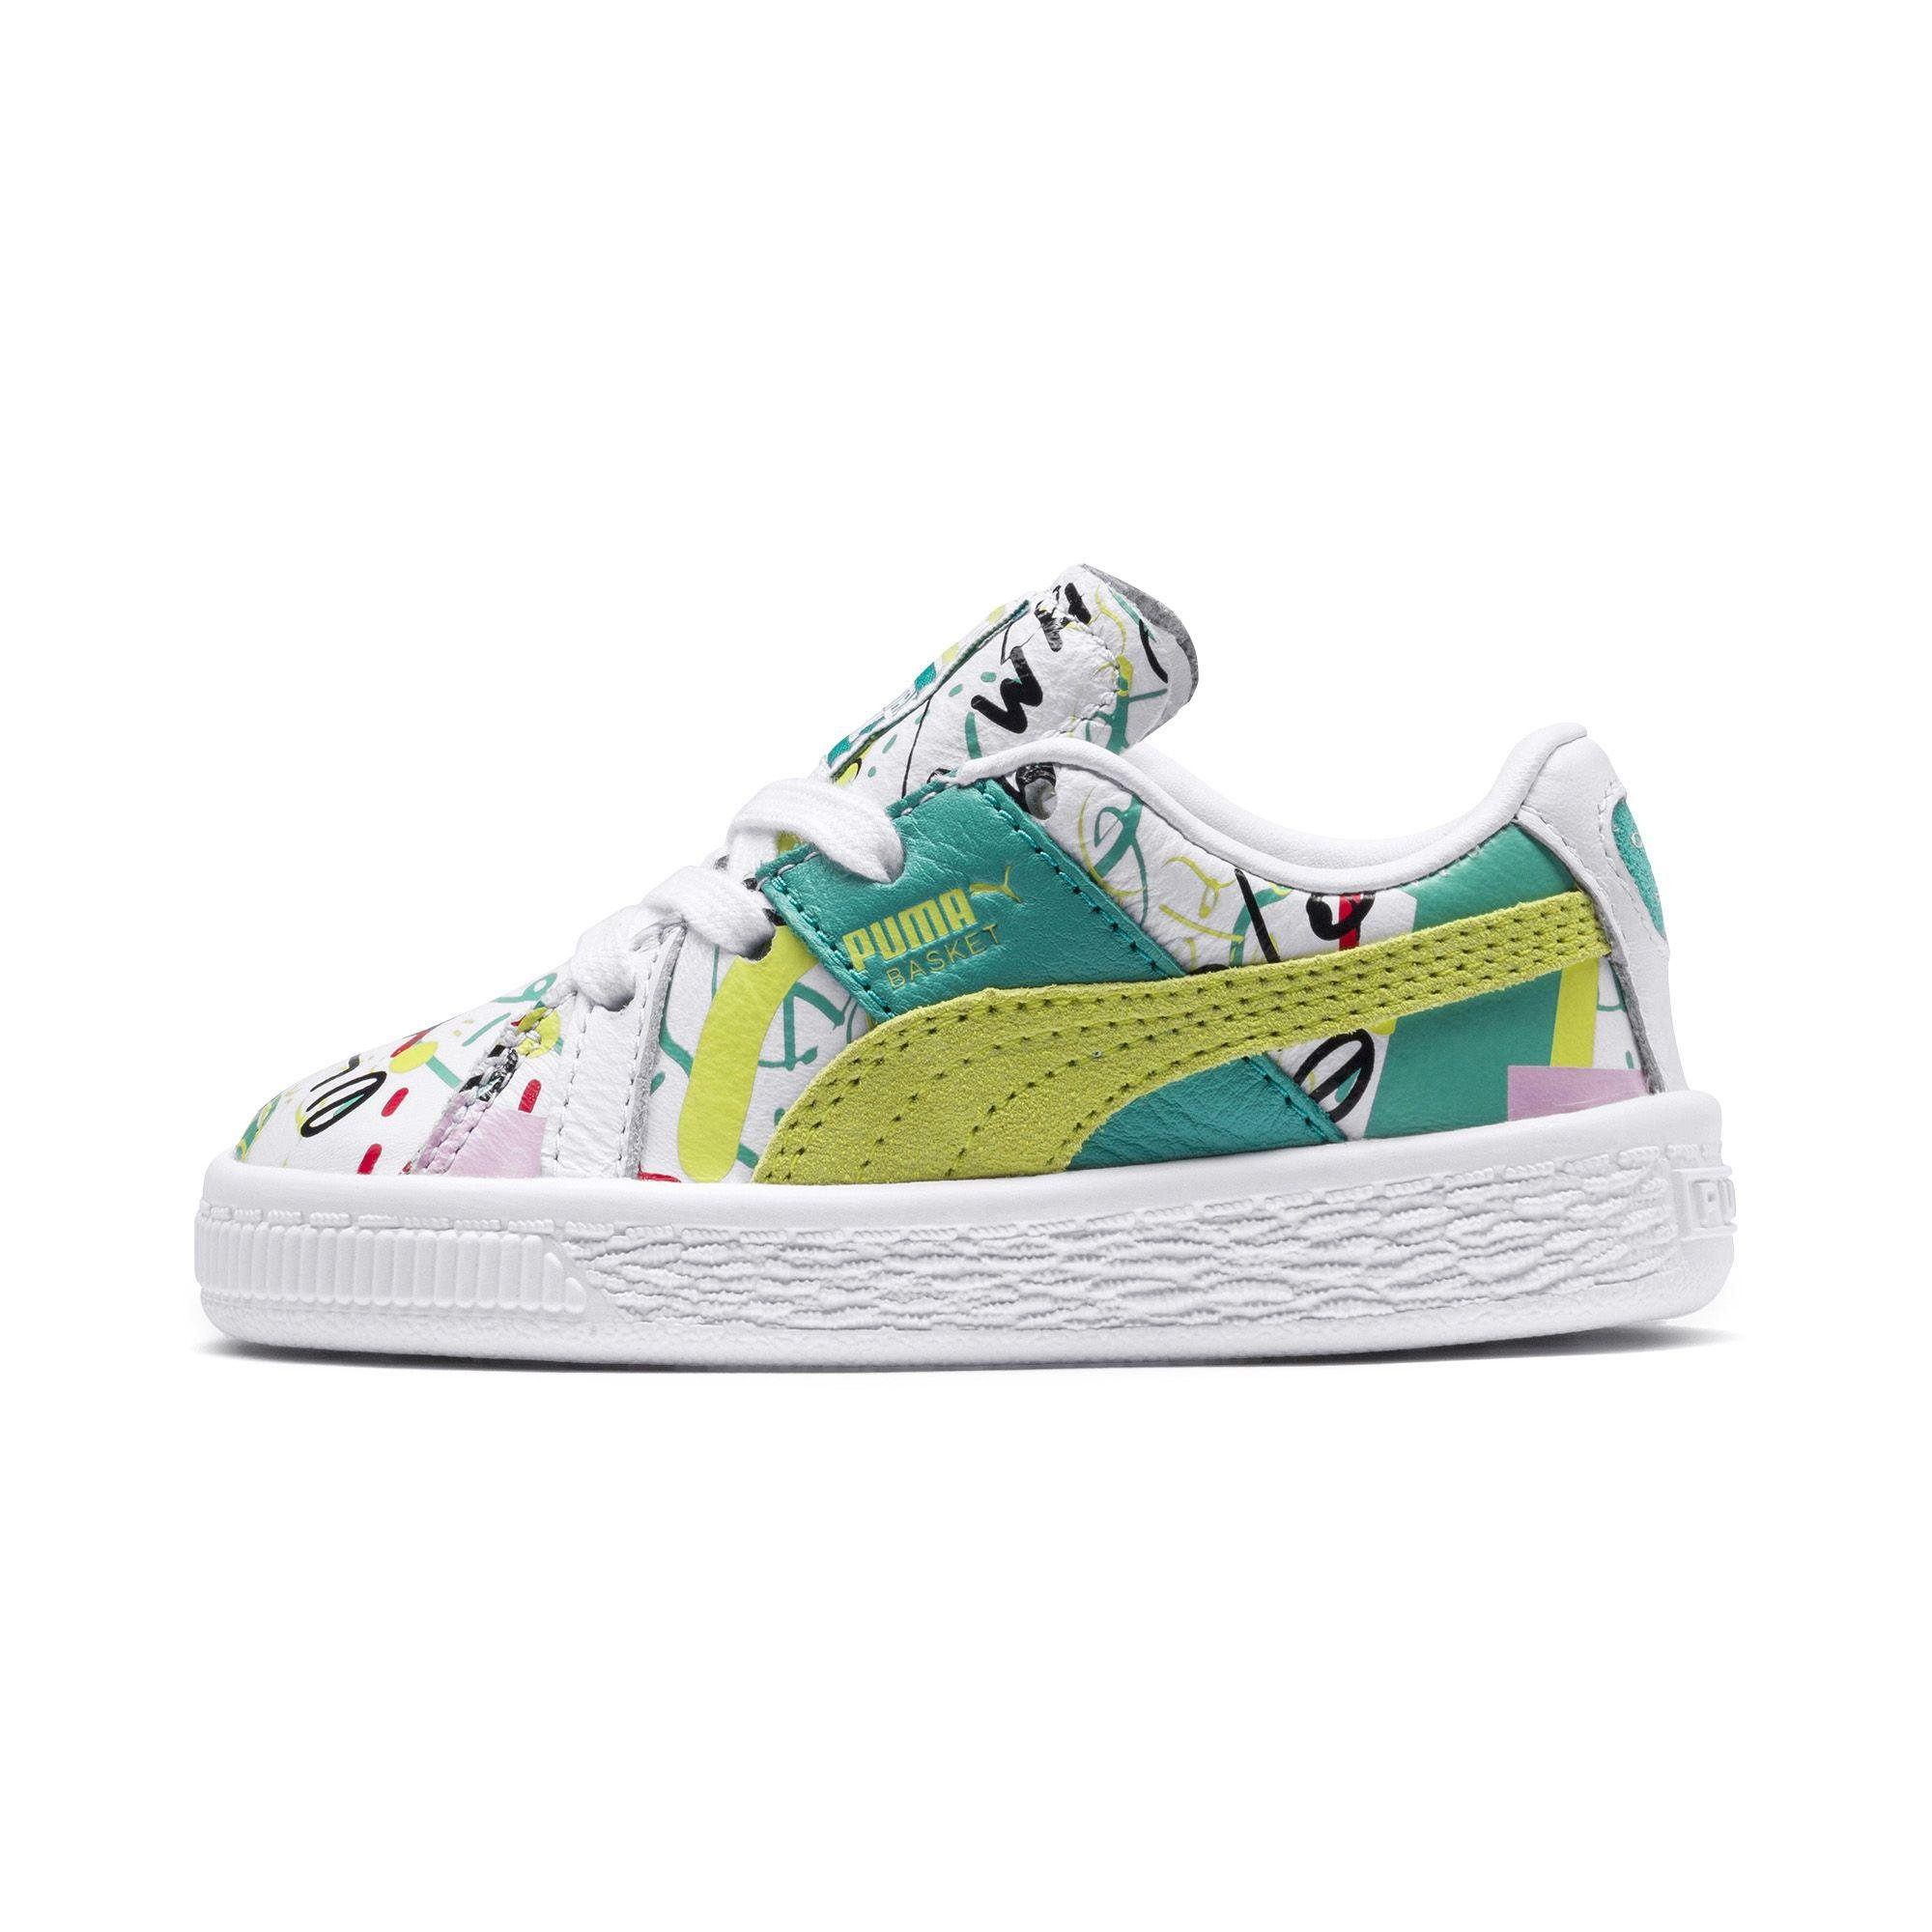 8d77b16aaf6b Lyst - PUMA X Shantell Martin Basket Graphic Infant Sneakers in White